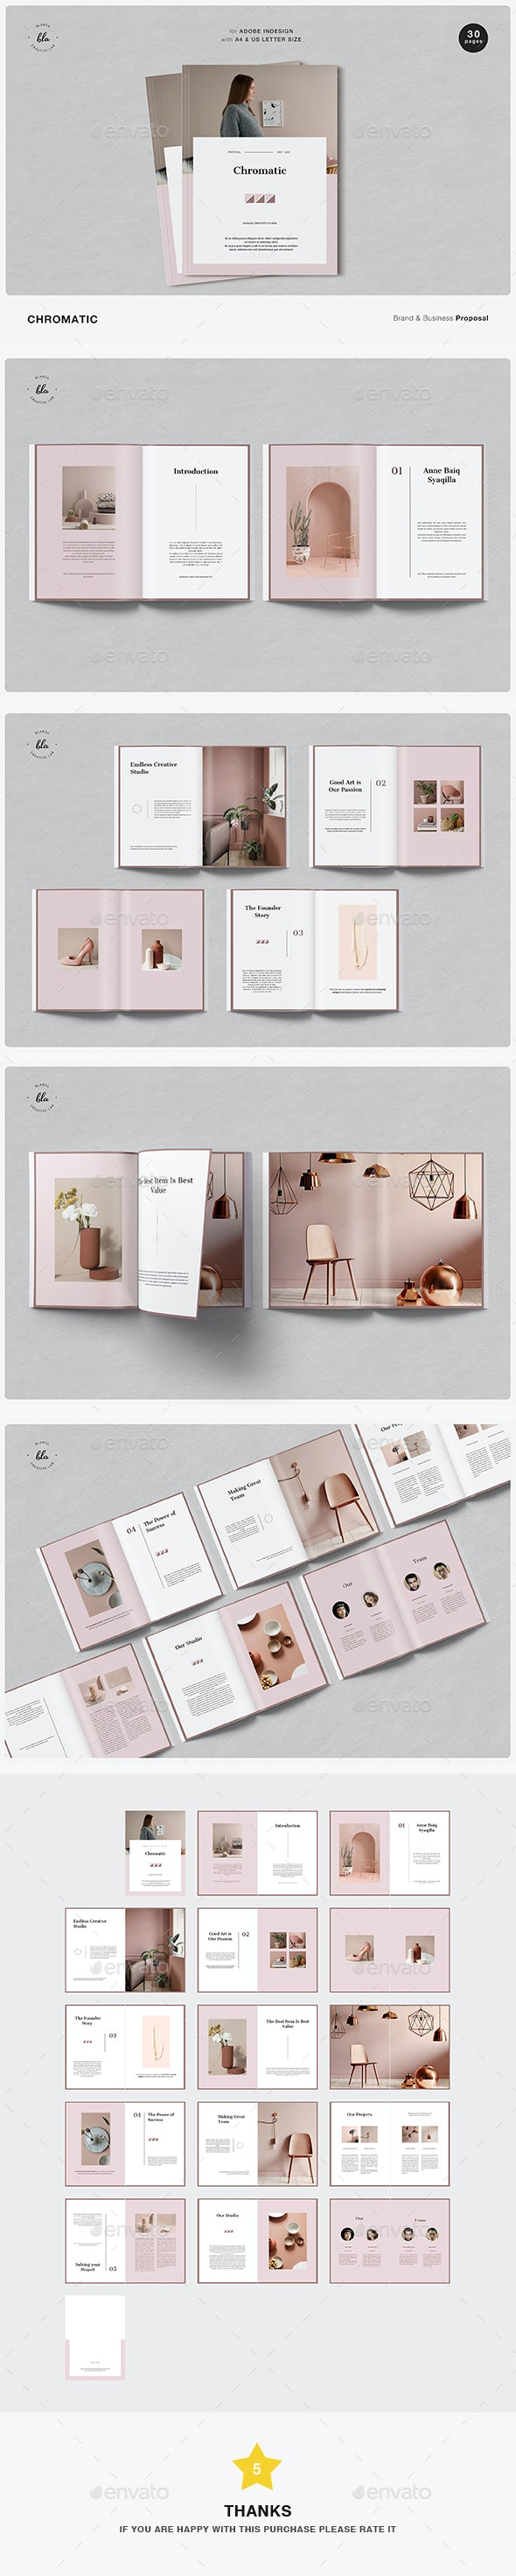 Chromatic Business Proposal - Magazines Print Templates